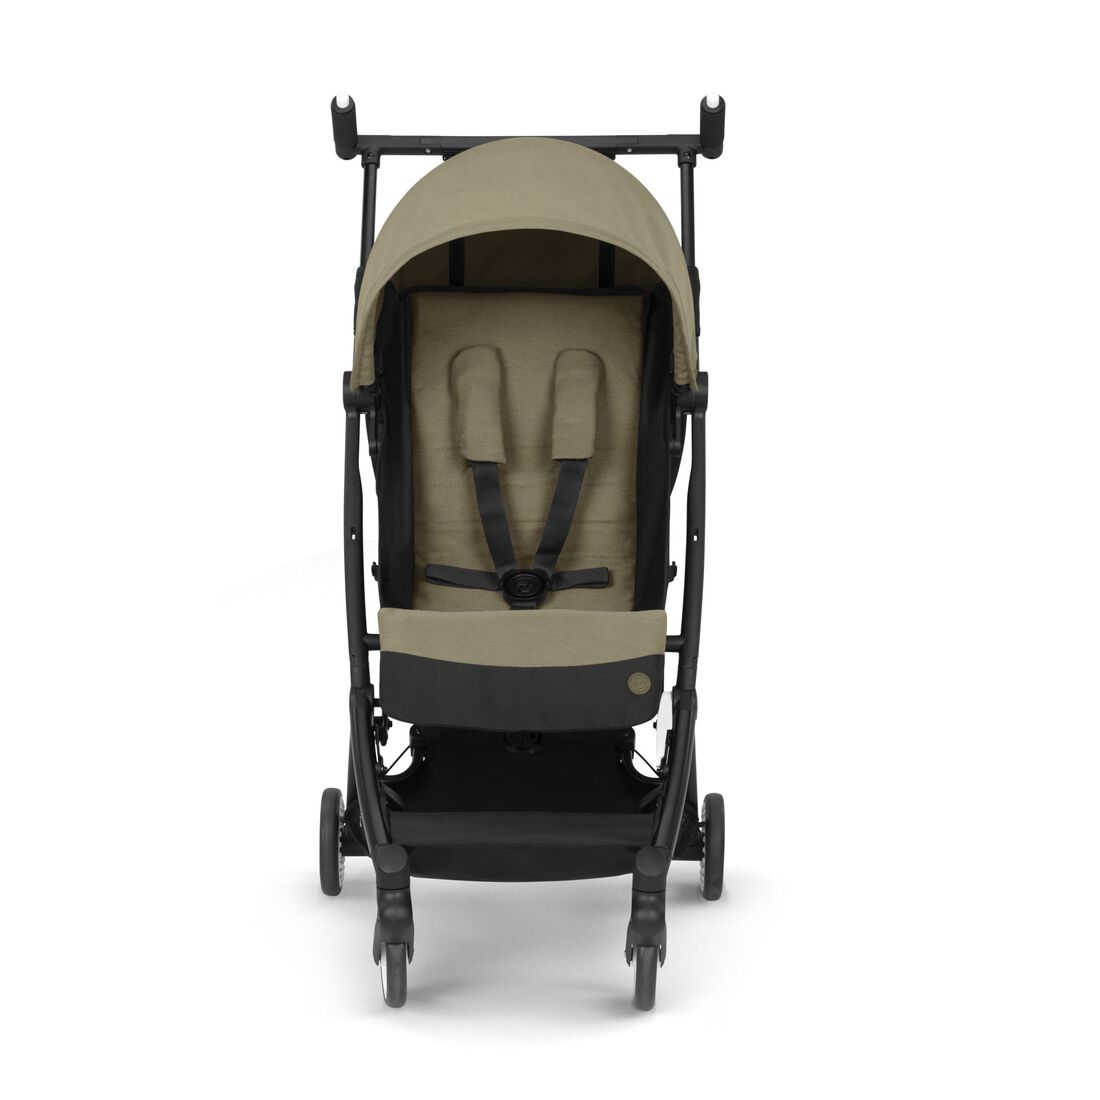 CYBEX Libelle - Classic Beige in Classic Beige large image number 2